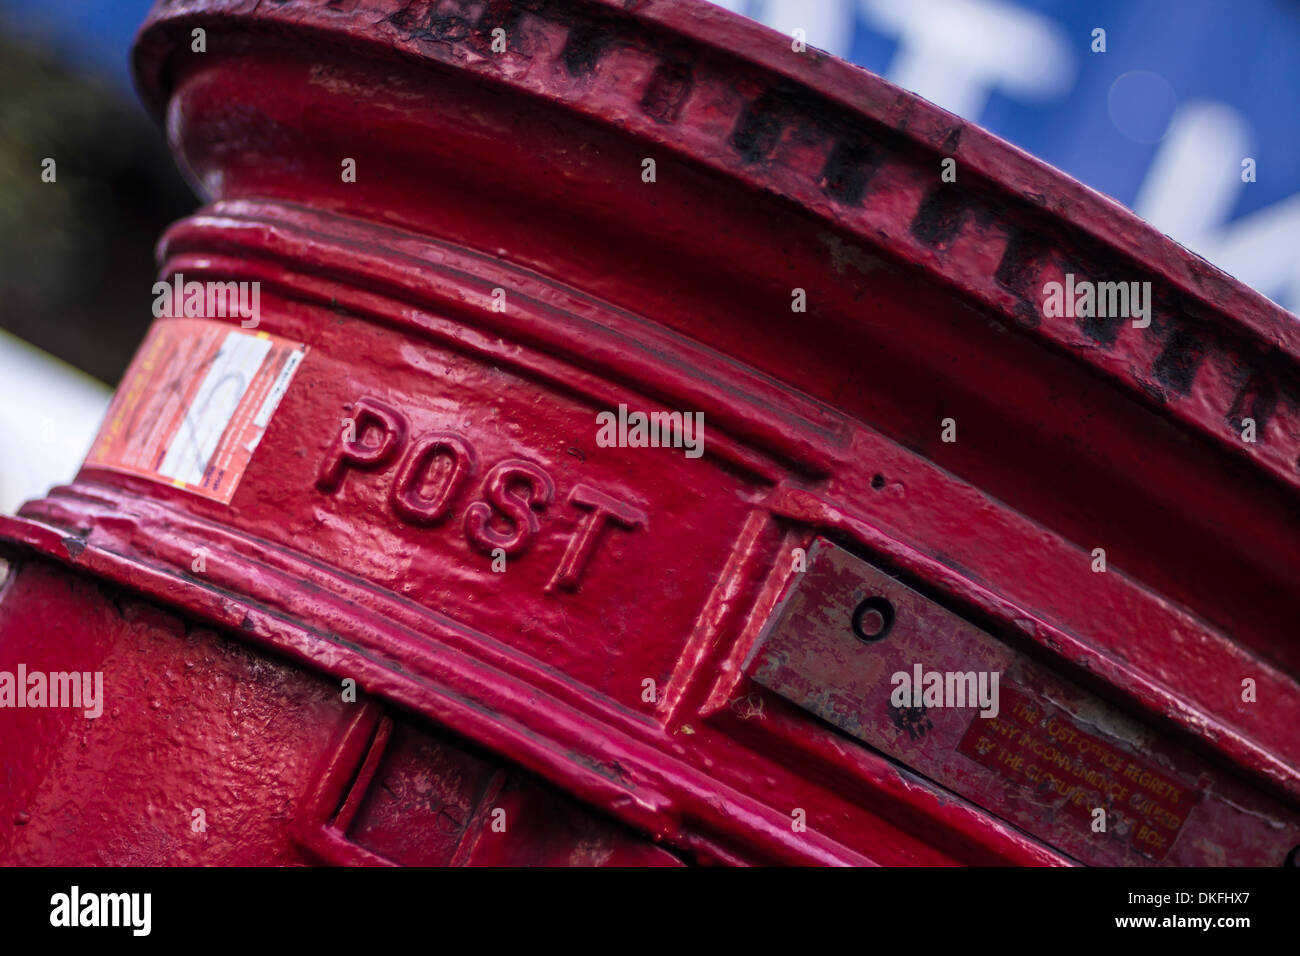 Close up detail image of a UK Royal Mail Red Pillar Box with the word POST clearly shown. Stock Photo